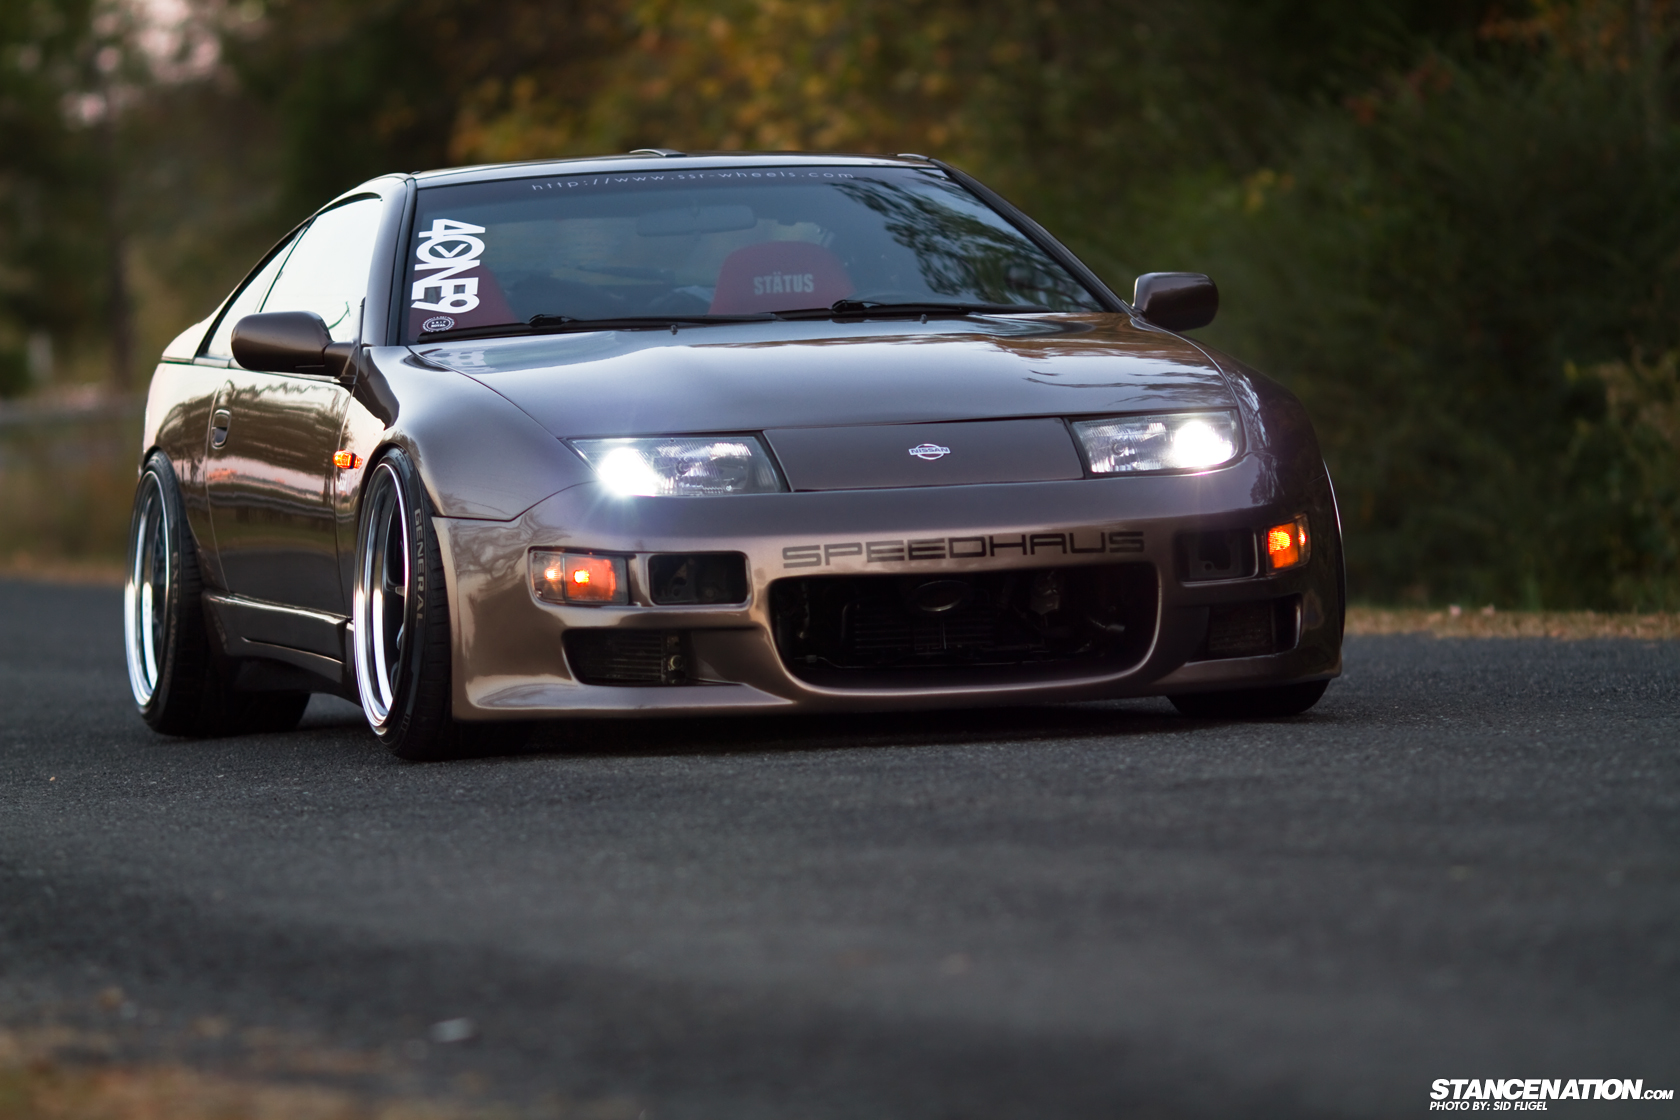 form function steven 39 s stunning nissan 300zx stancenation form function. Black Bedroom Furniture Sets. Home Design Ideas